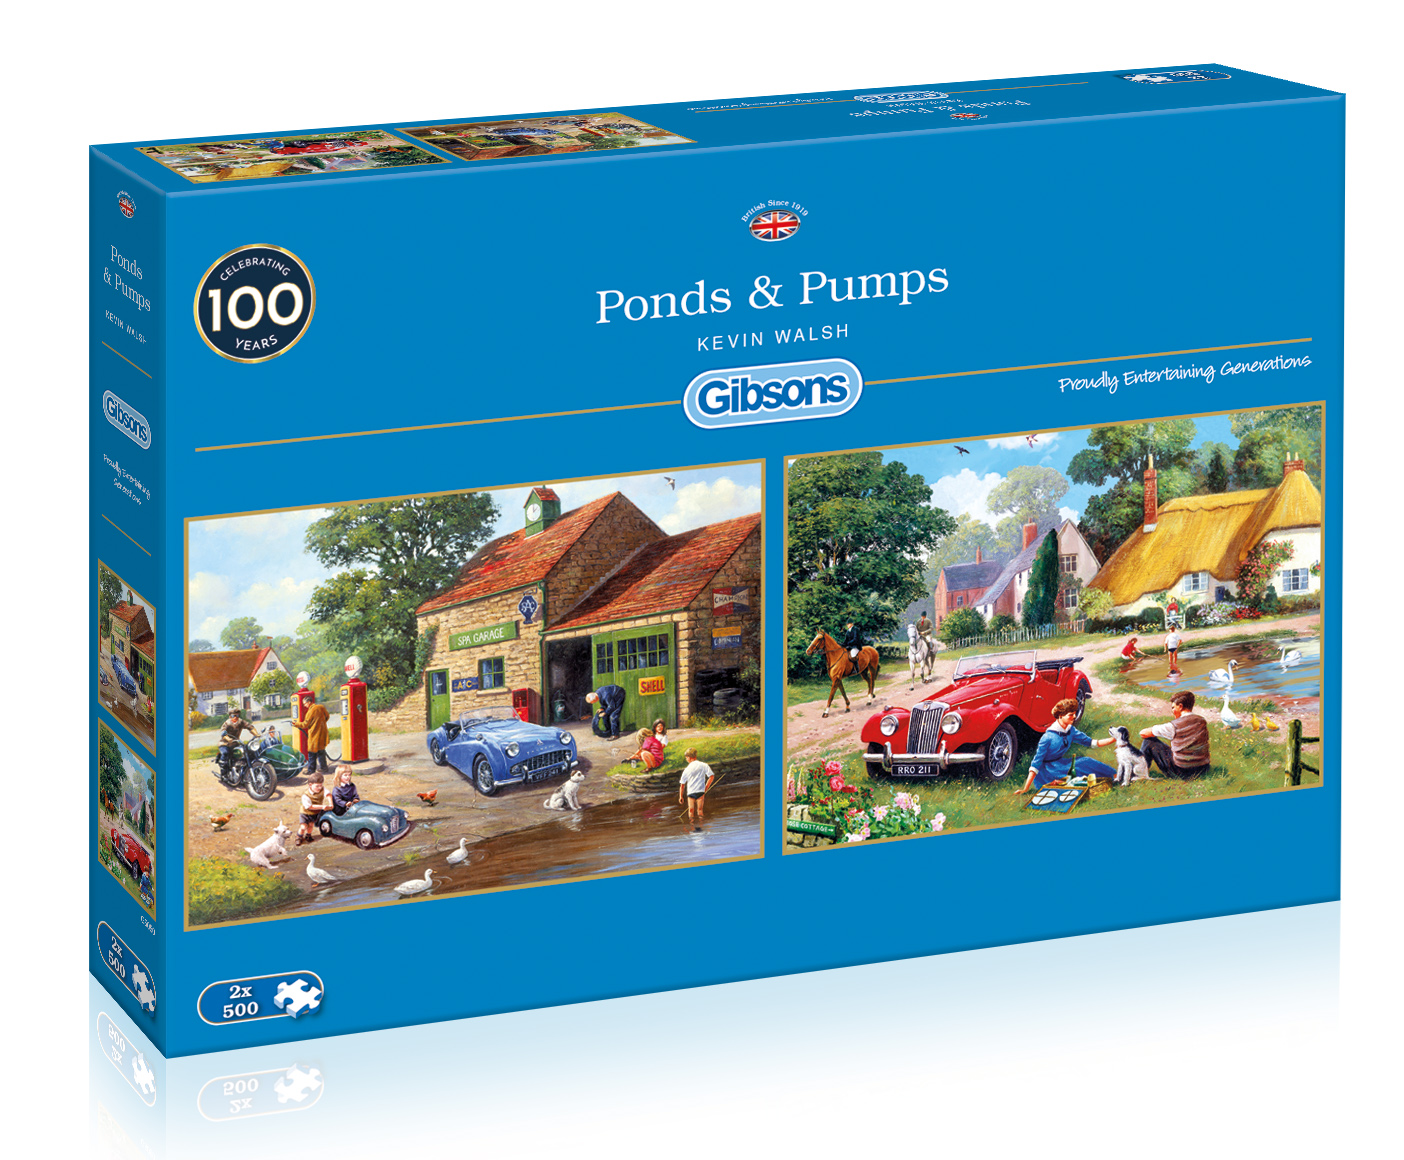 Ponds & Pumps 2 x 500pc Jigsaw Puzzle